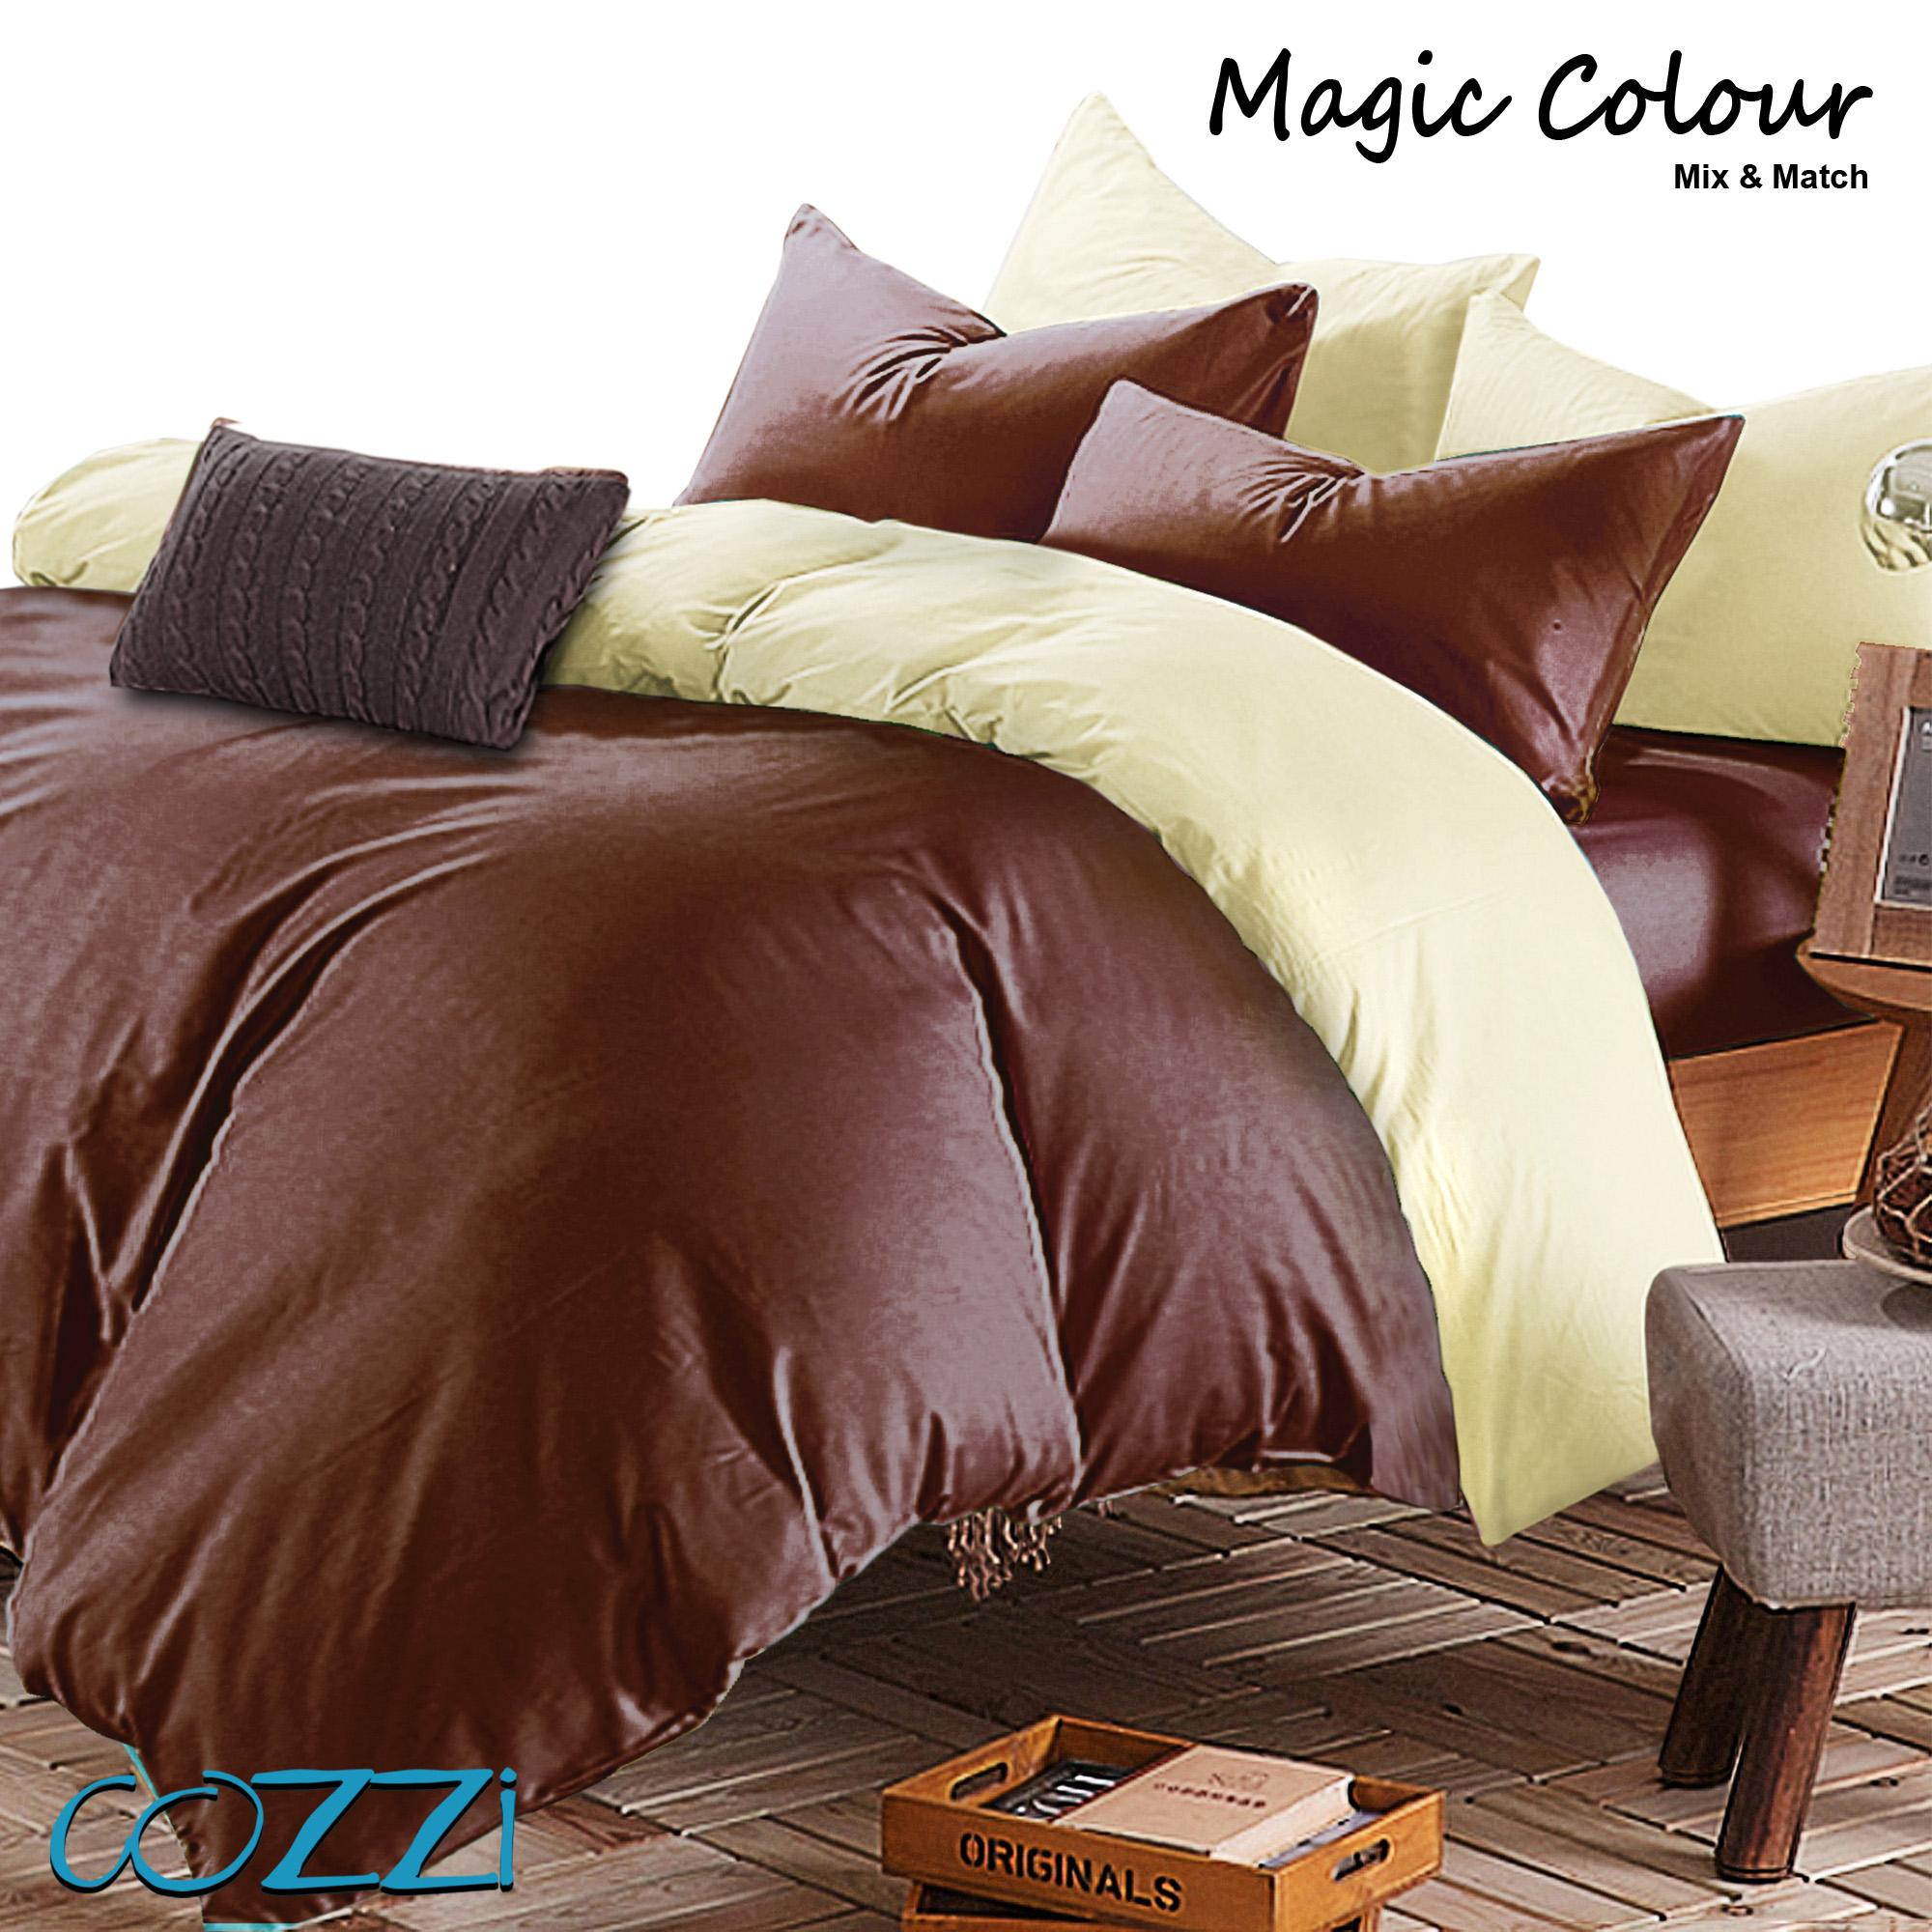 Special Edition : Cozzi Magic Colour Cadar Bedsheet with comforter King / Queen Plain Microfiber ( Brown/Beige)